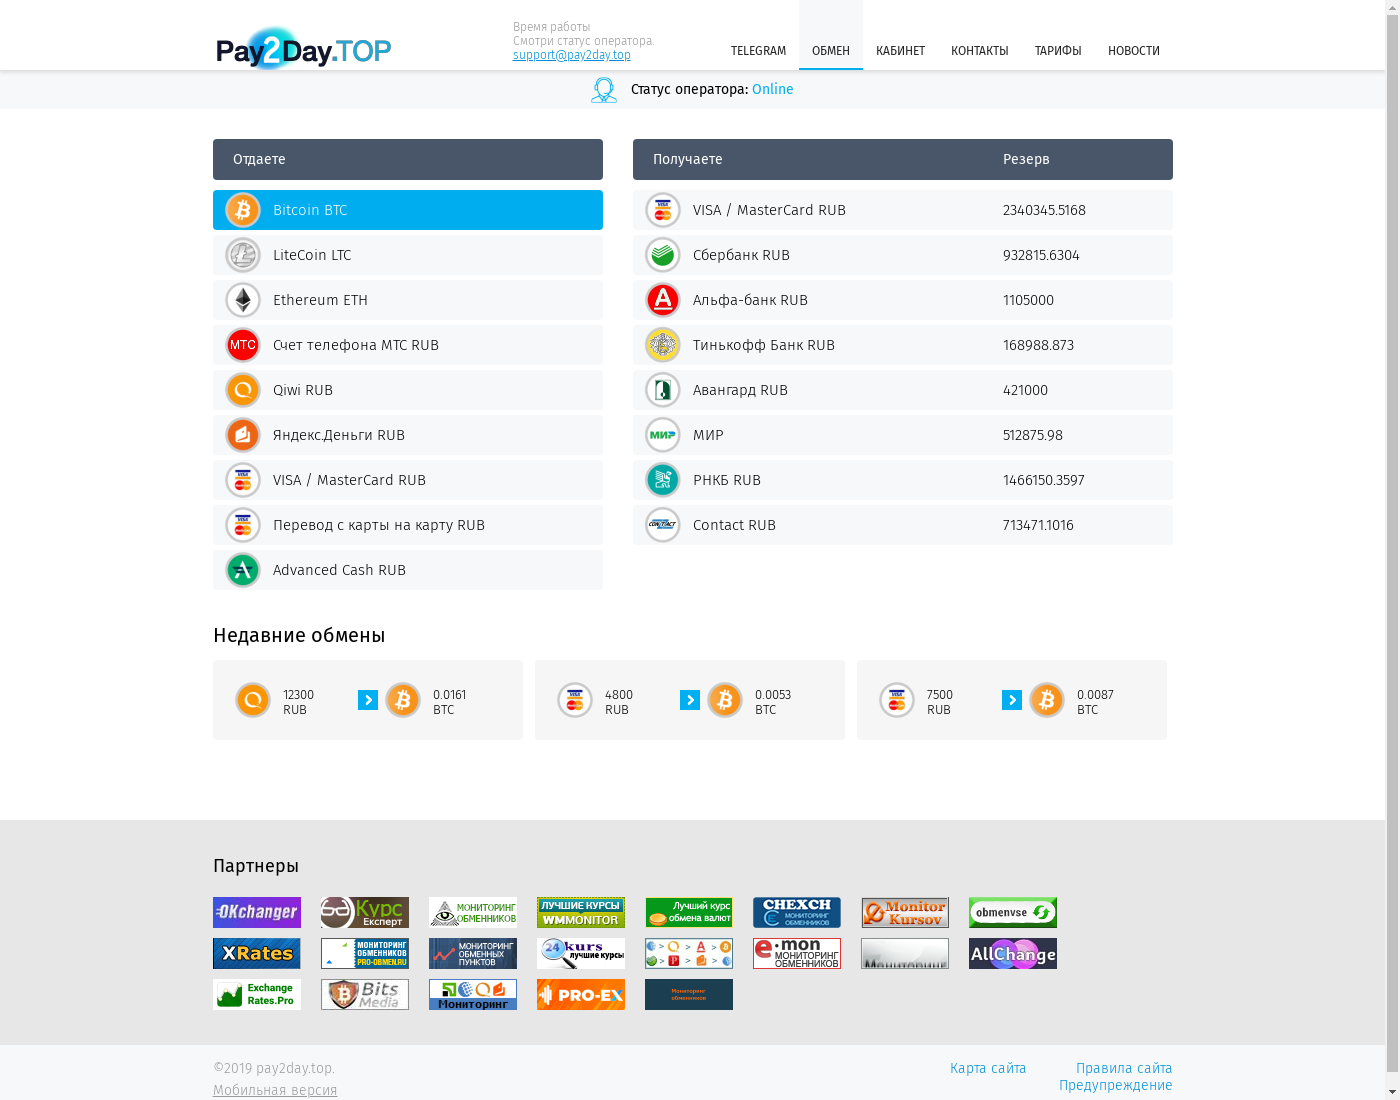 Pay2Day user interface: the home page in English